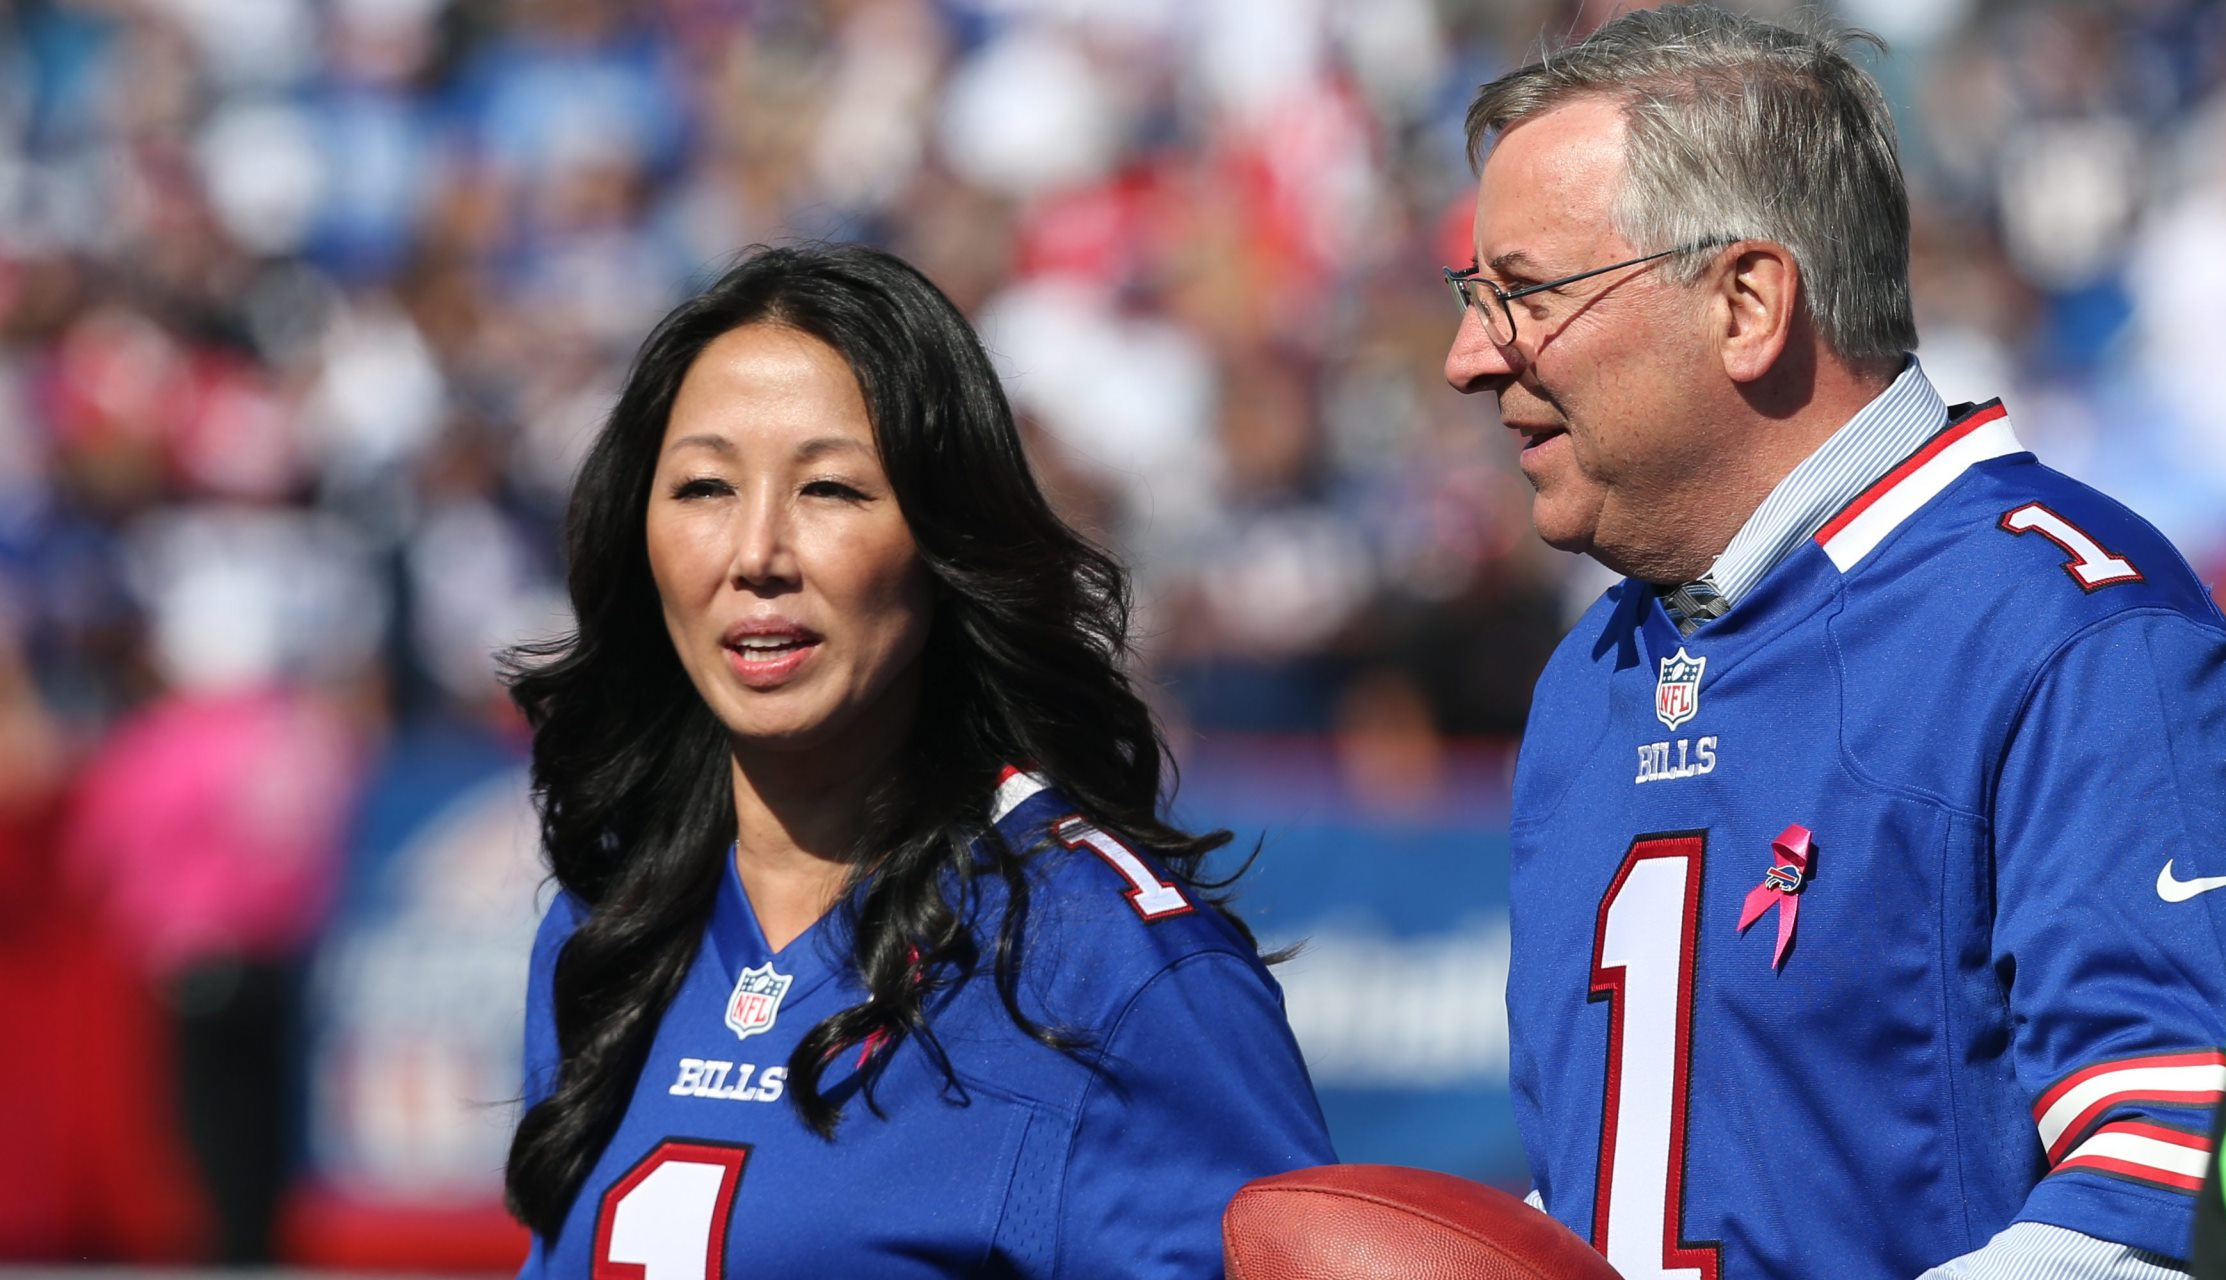 'There's no exact right answer to this,' Kim Pegula said of an NFL policy on anthem protests. (News file photo)